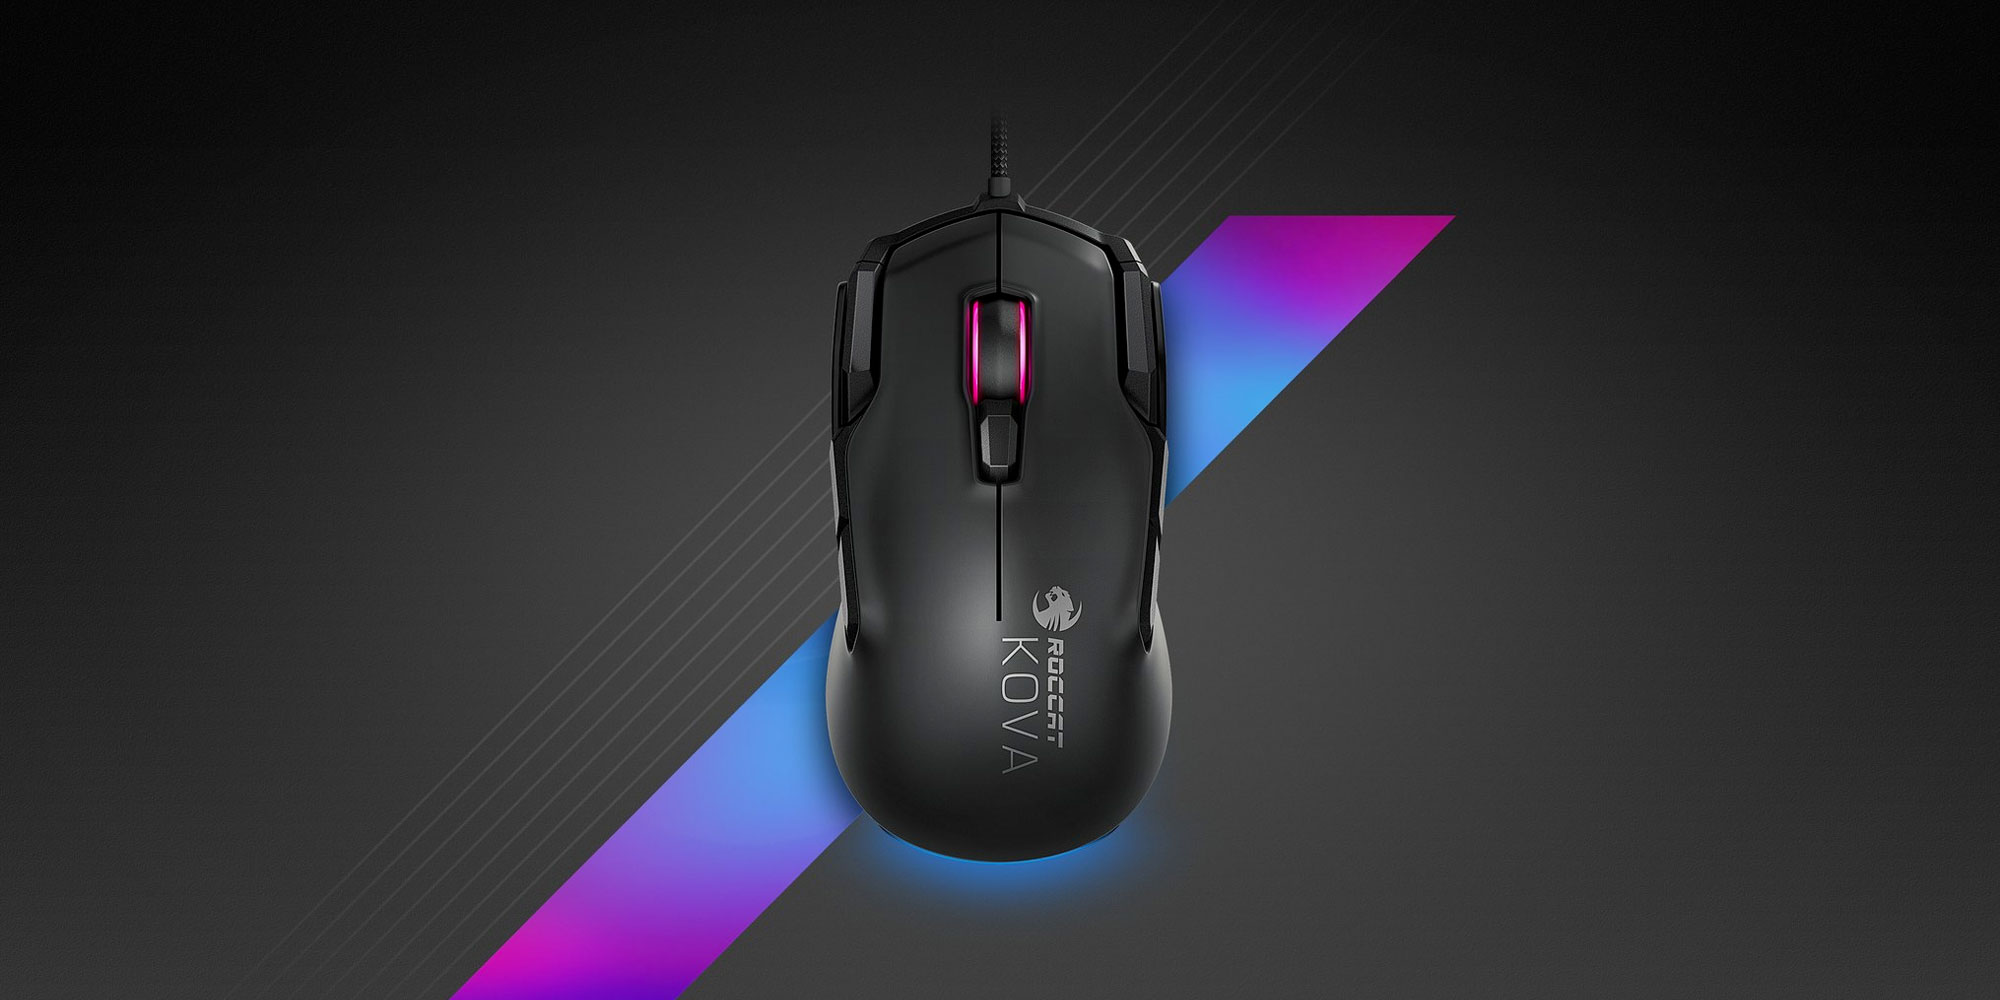 5d9aa210fbb The ROCCAT Kova AIMO mouse is built w/ gamers in mind - 9to5Toys